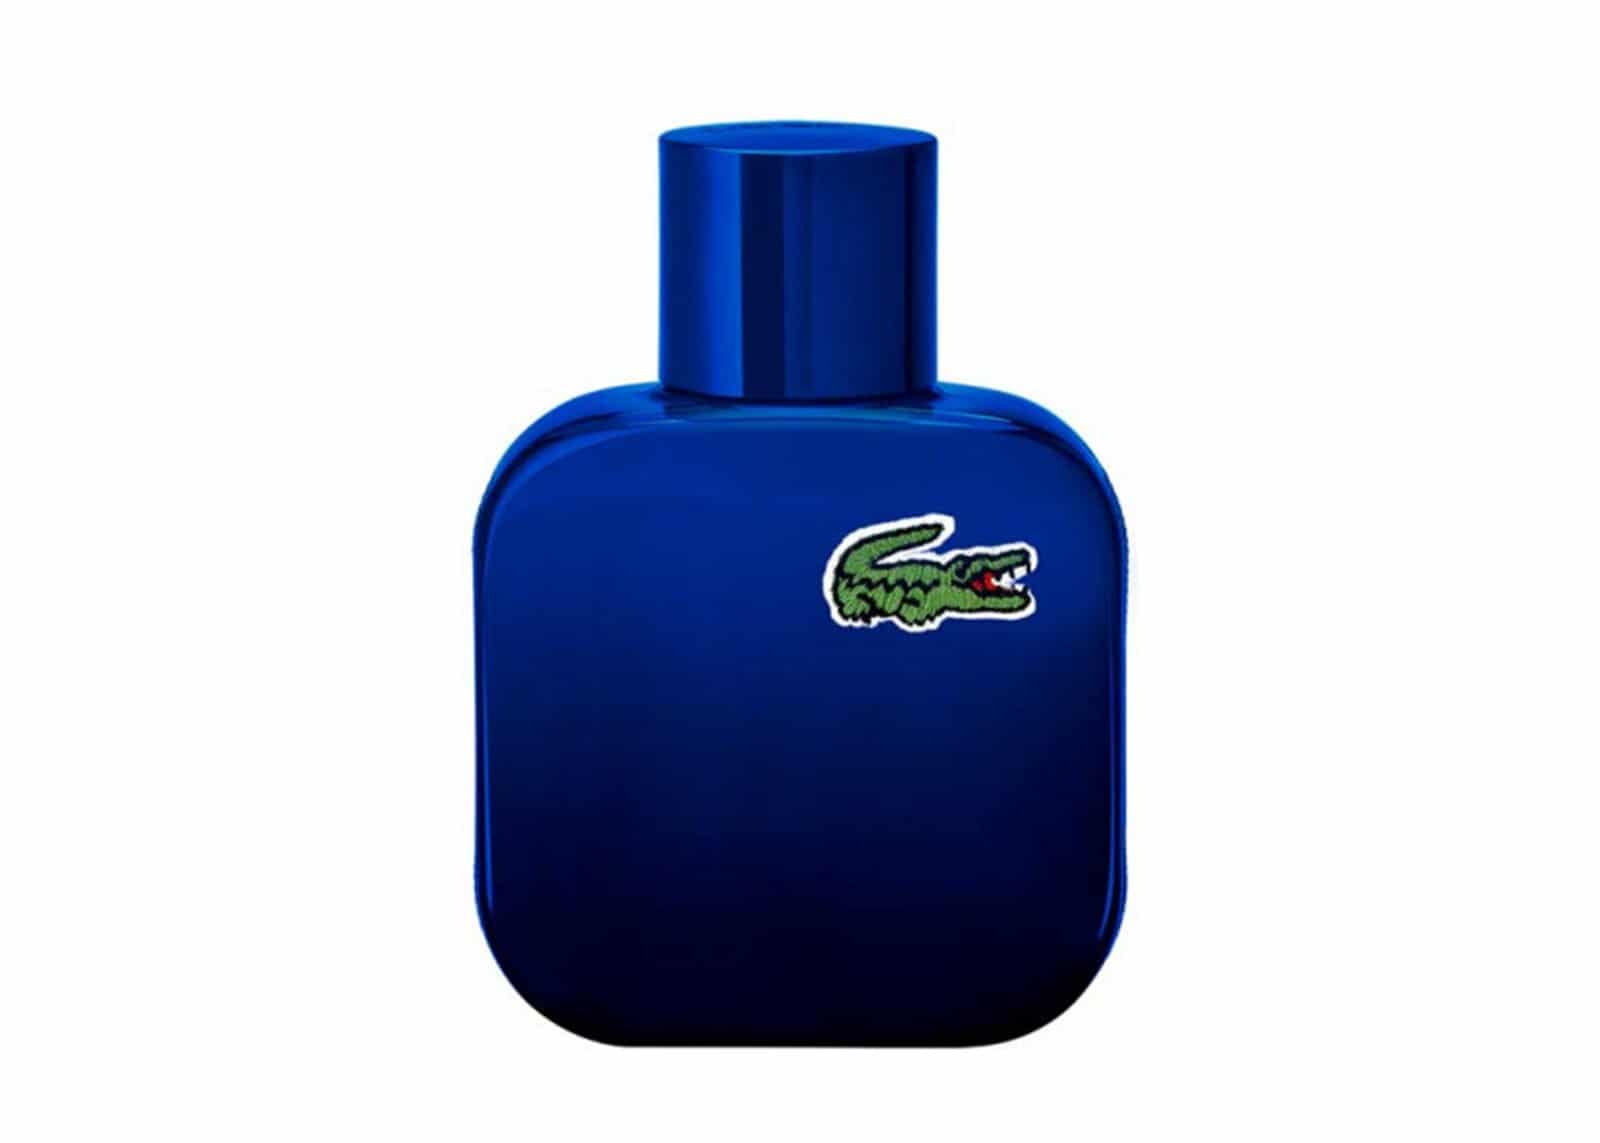 Lacoste-L.12.12-Magnetic-EDT